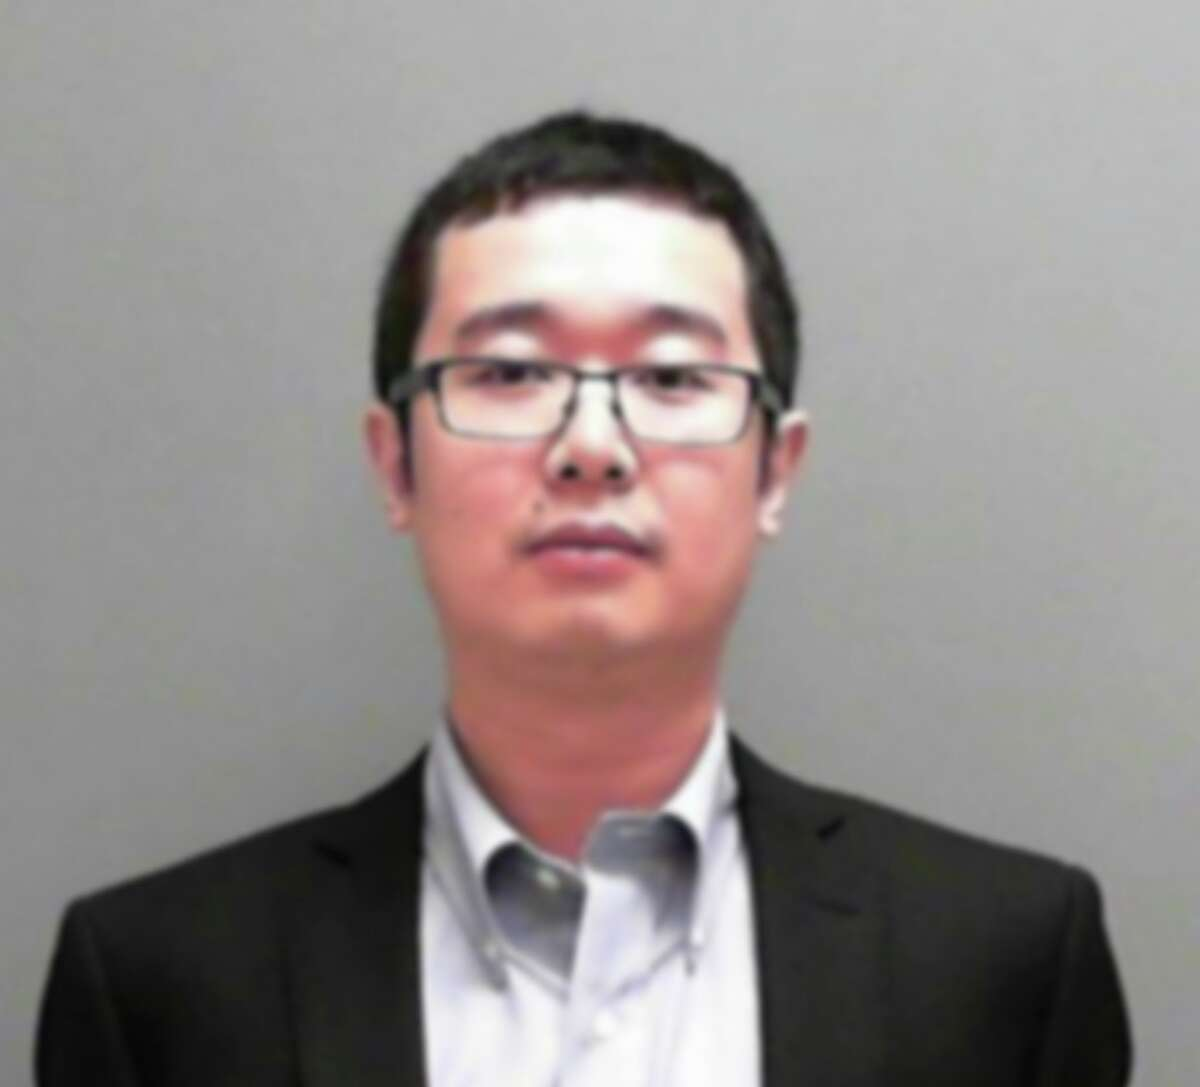 Gang Liu Liu worked for a high-performance foam business as an engineer and was accused of stealing trade secrets for the company and transmitting them to a Chinese company, known as CBM Future. He was indicted in June 2017 for theft of trade secrets but fled the country in November 2017 while on supervised pretrial release. Liu is described as an Asian male with black hair, standing 6 feet tall and weighing about 150 pounds.